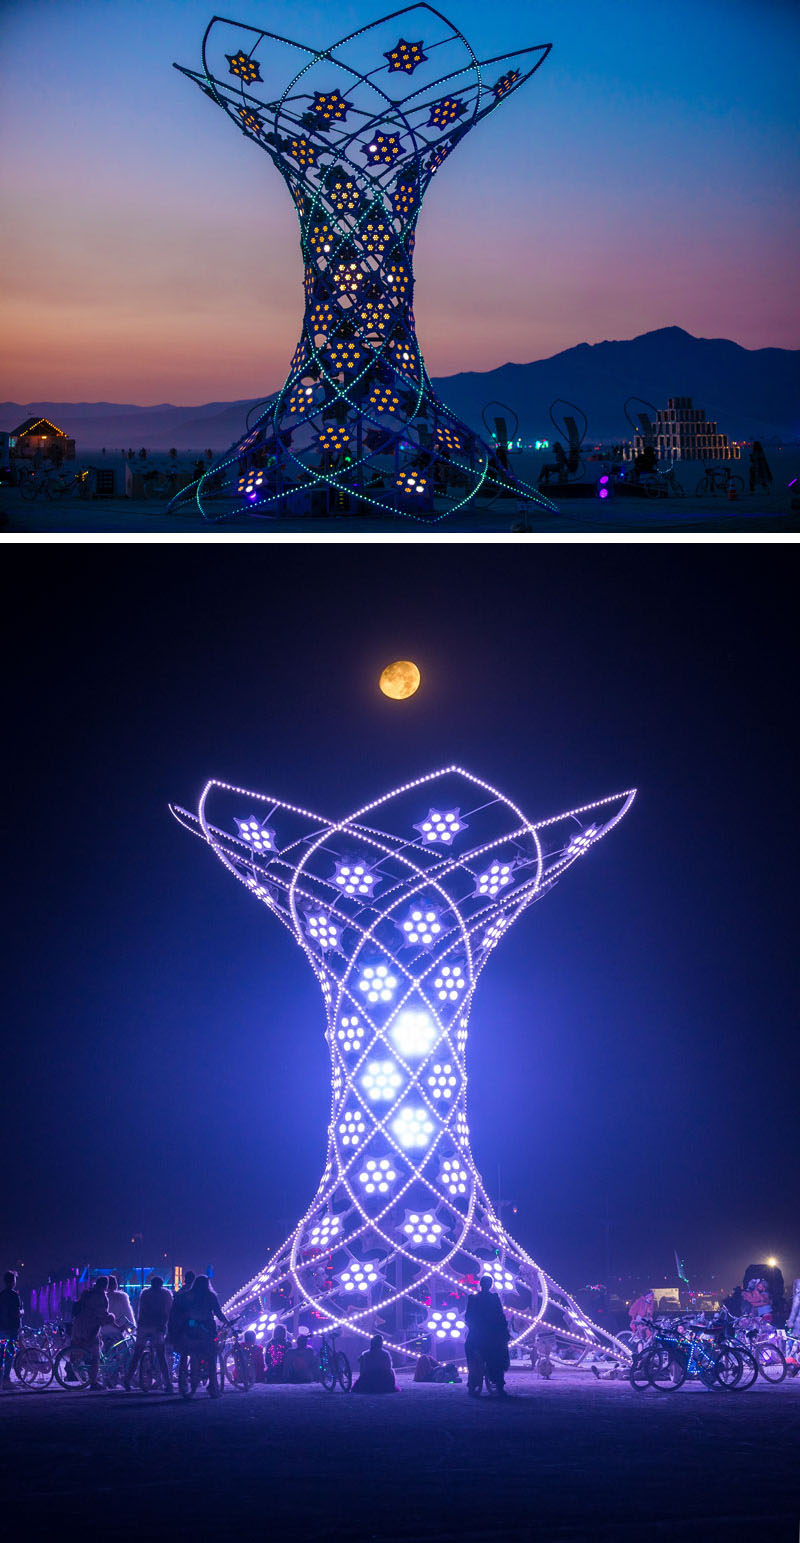 37-Foot Tall Ilumina Art Installation at Burning Man 2017